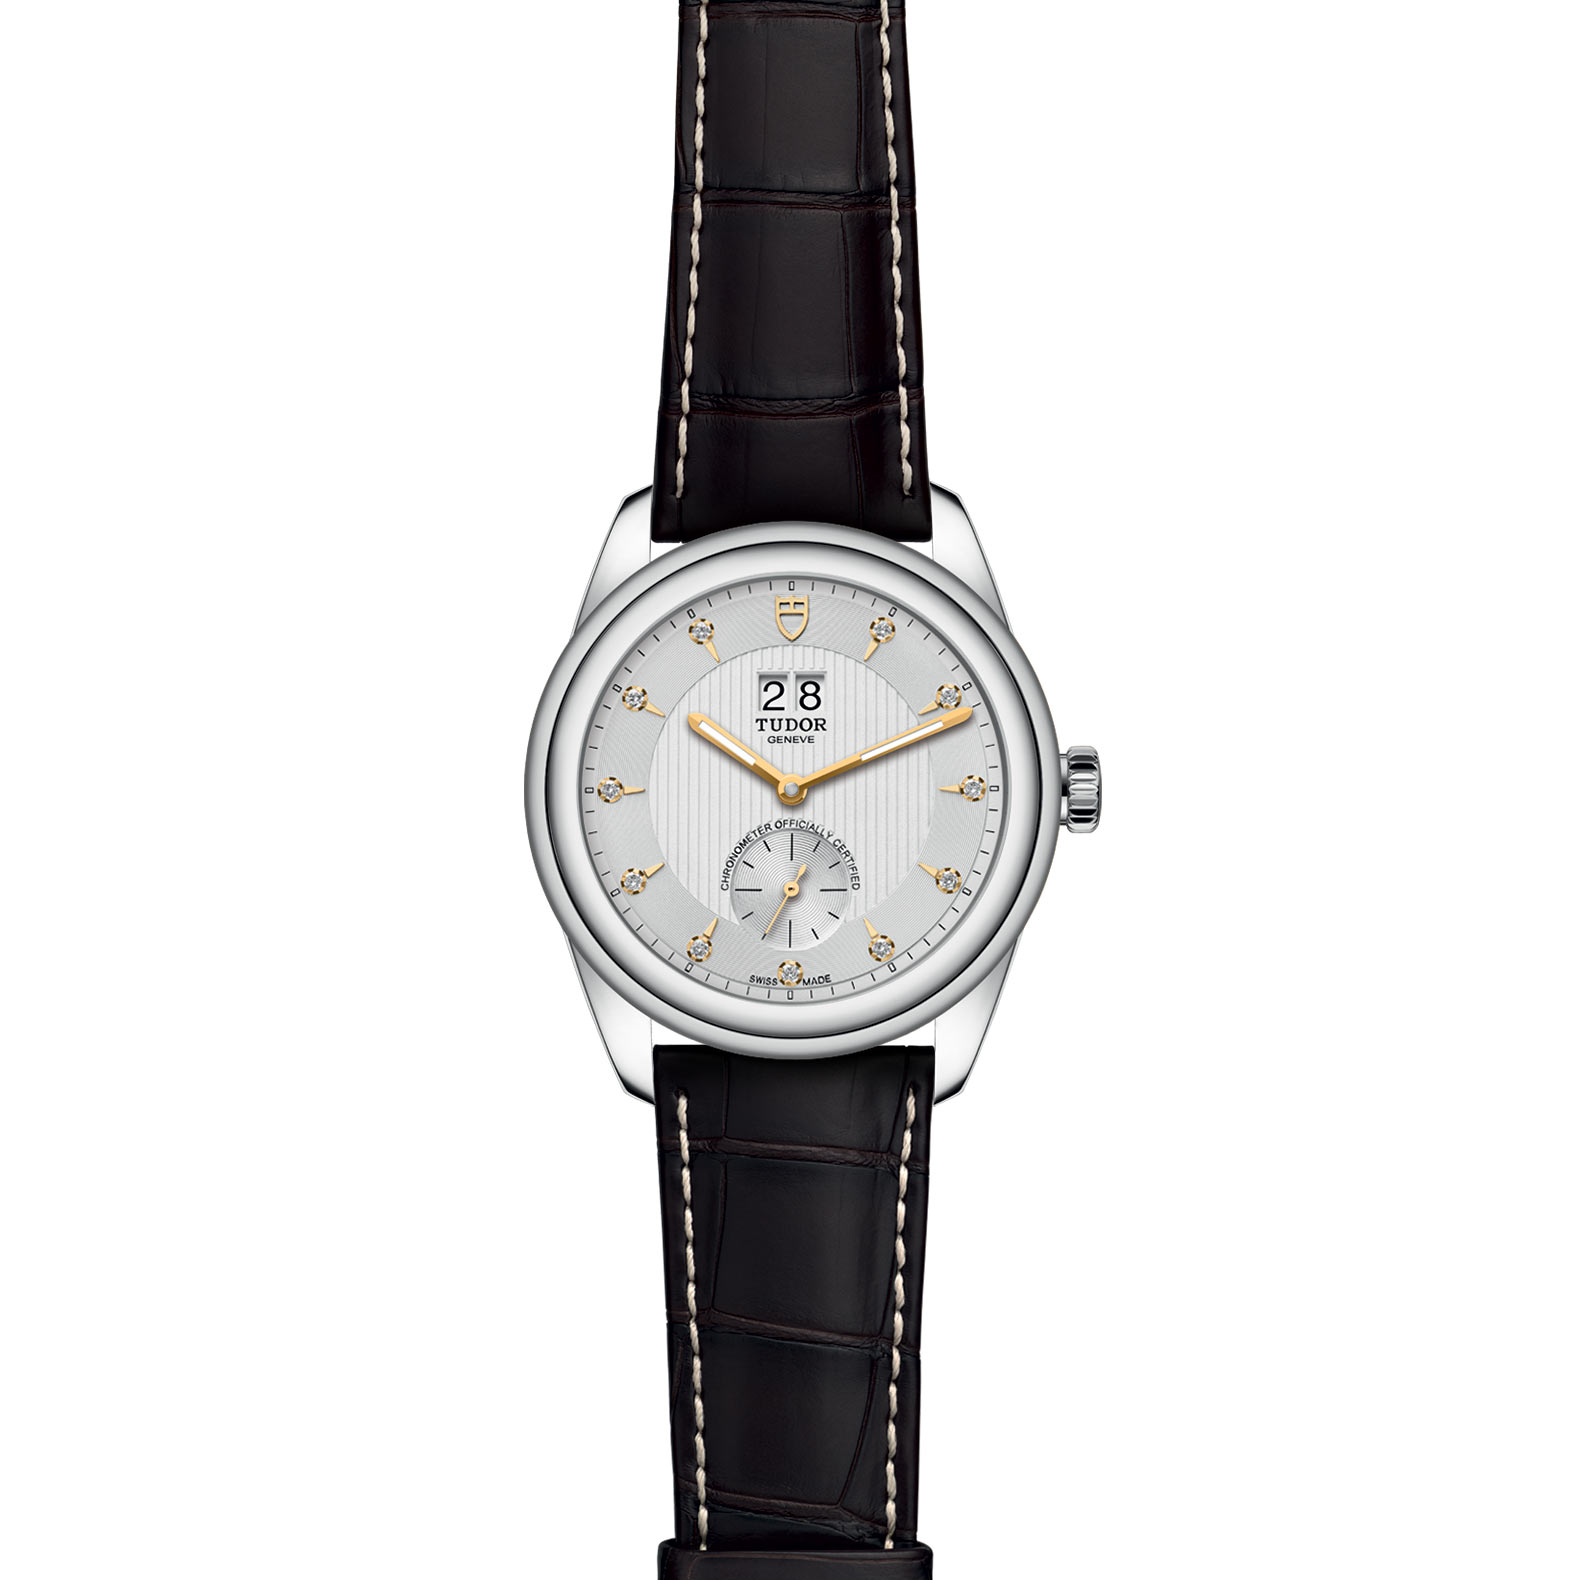 TUDOR Glamour Double Date M57100 0020 Frontfacing